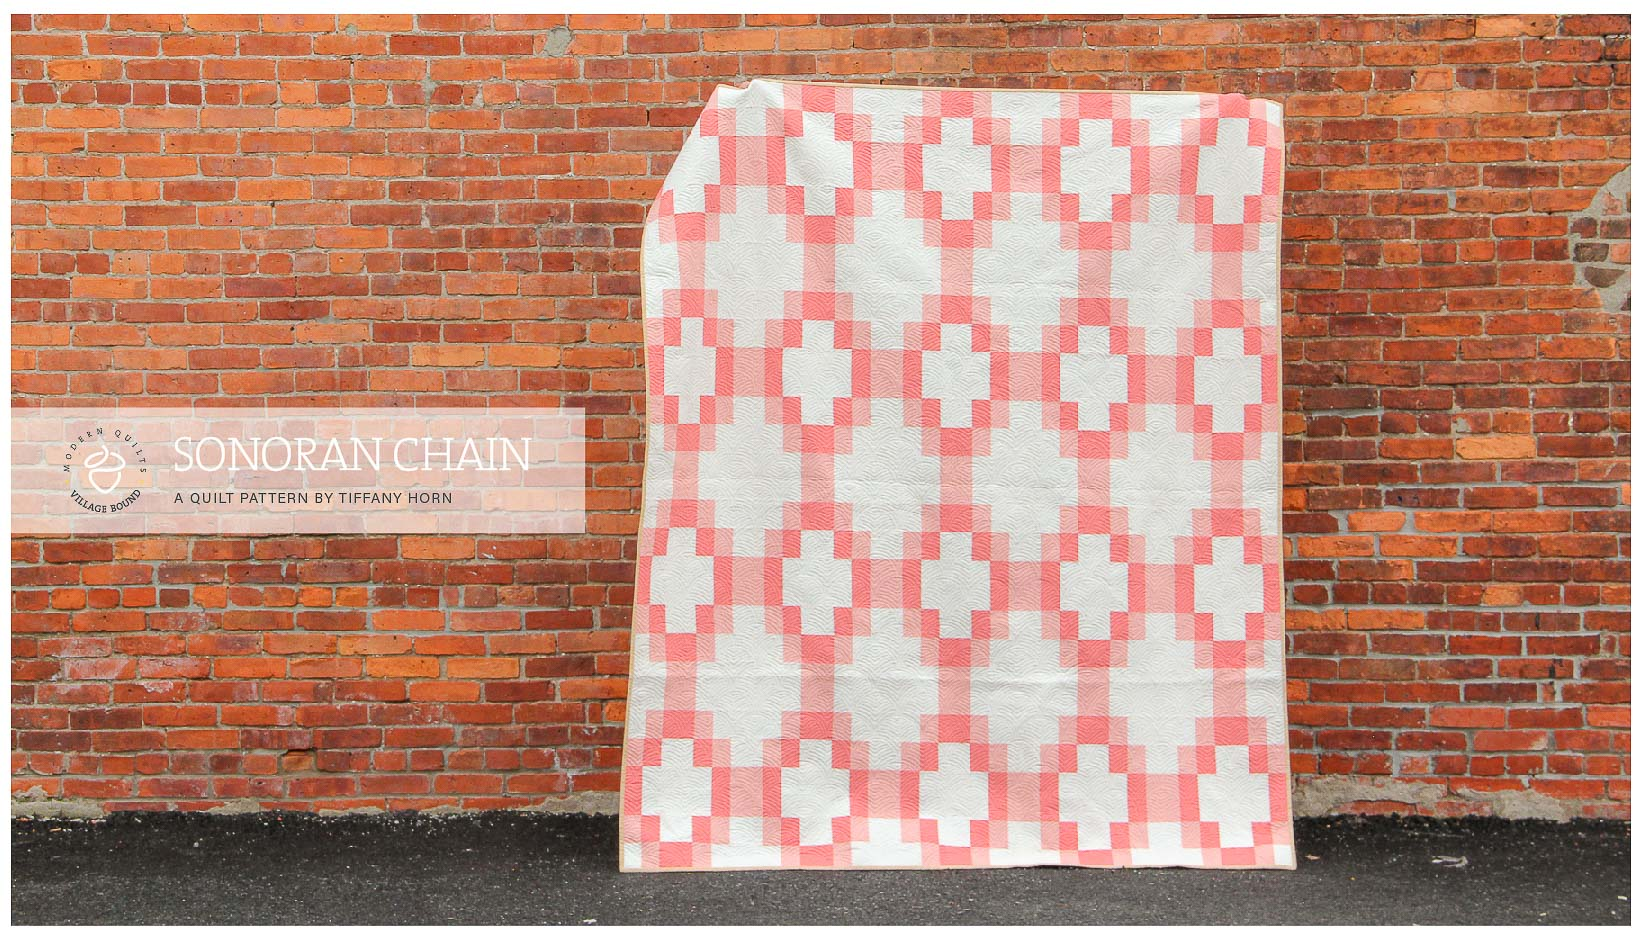 SonoranChainQuilt pattern by TiffanyHorn. villageboundquilts.com